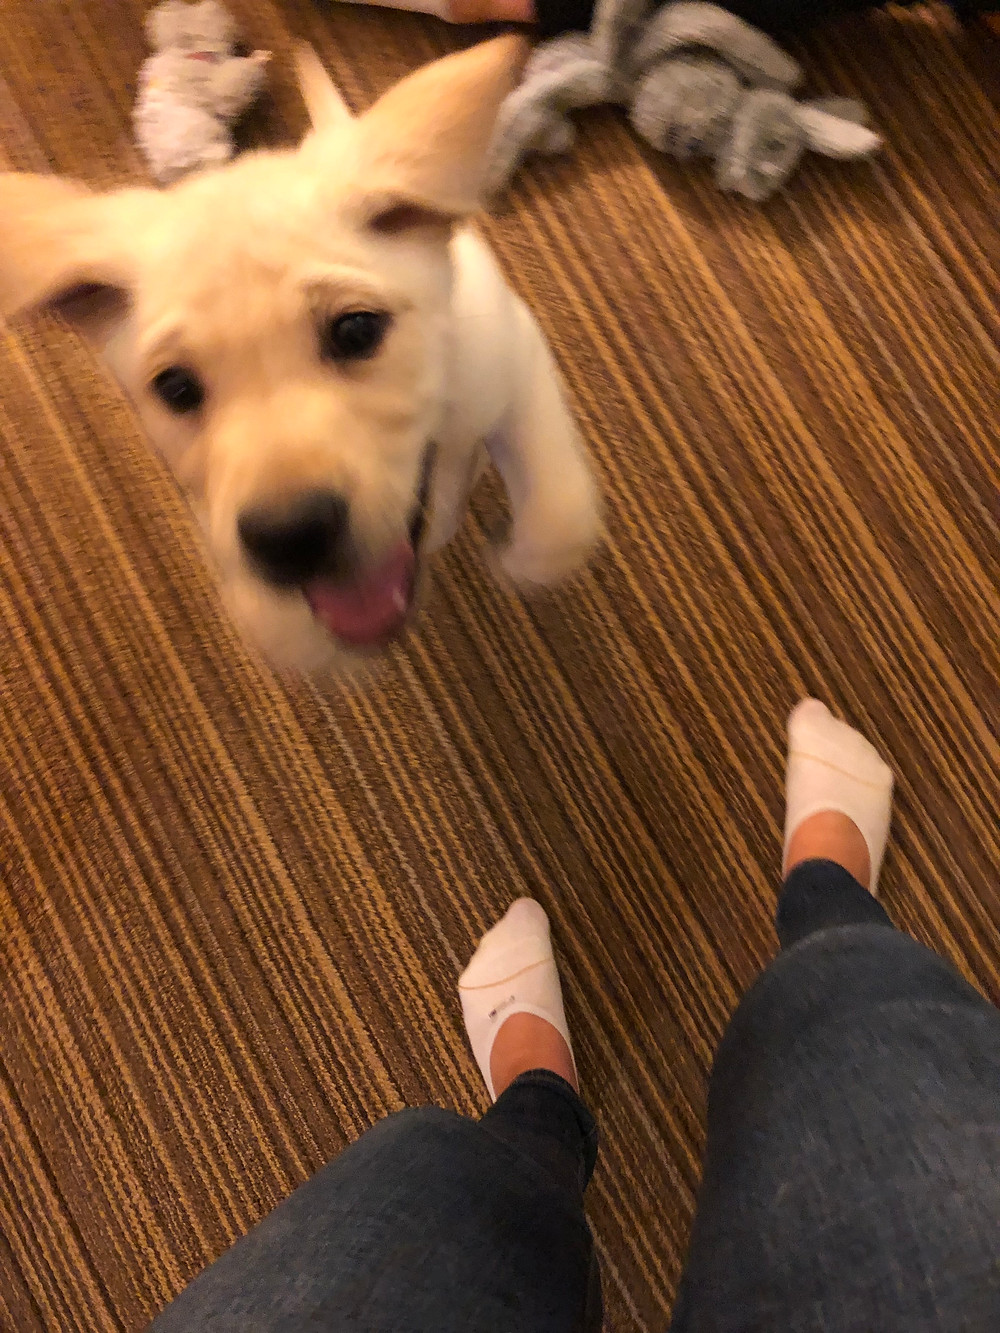 A 9 week old puppy is jumping towards the camera, ears flying. You can see my legs and socks and some dog toys blurred in the background.